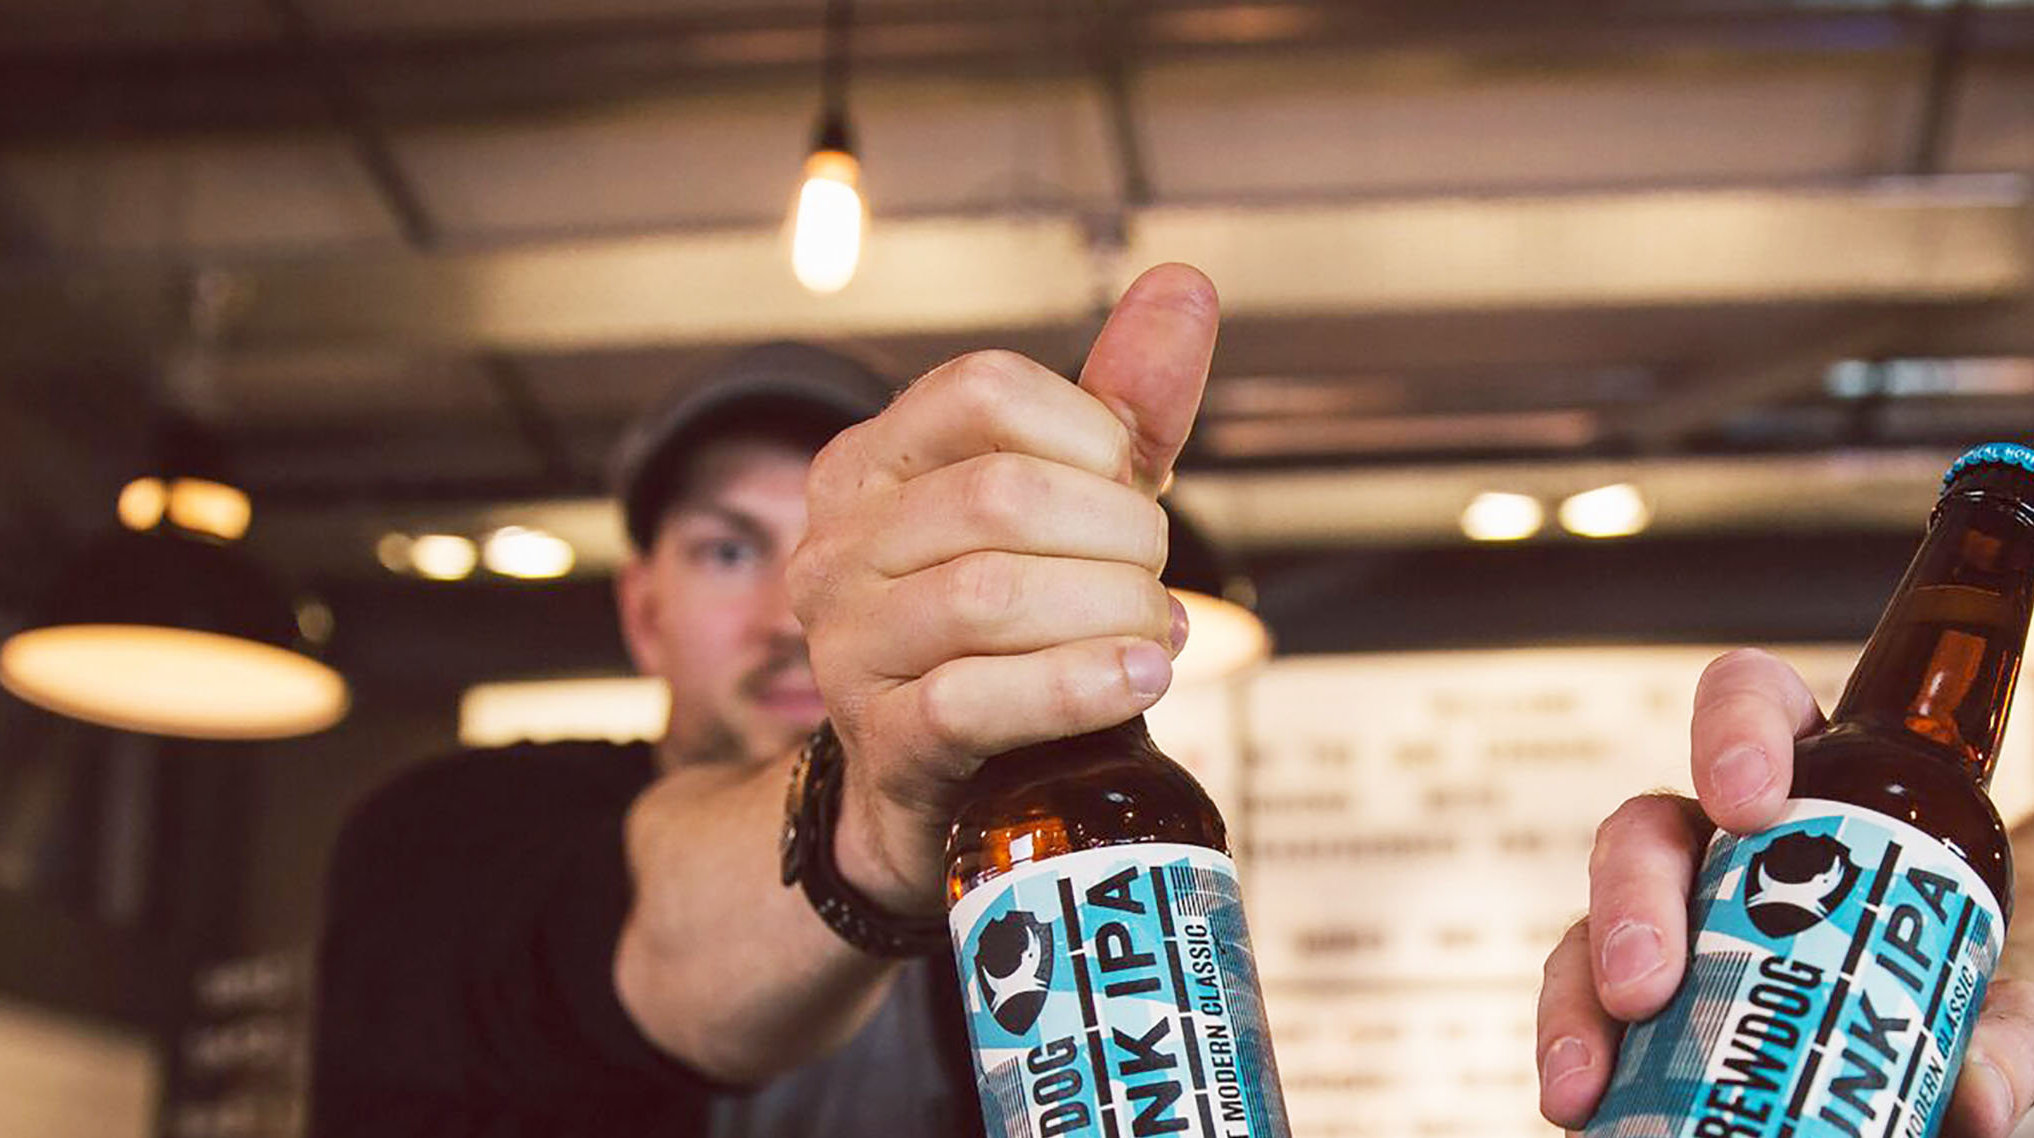 The fifth round of Equity for Punks saw BrewDog set out to raise £10 million